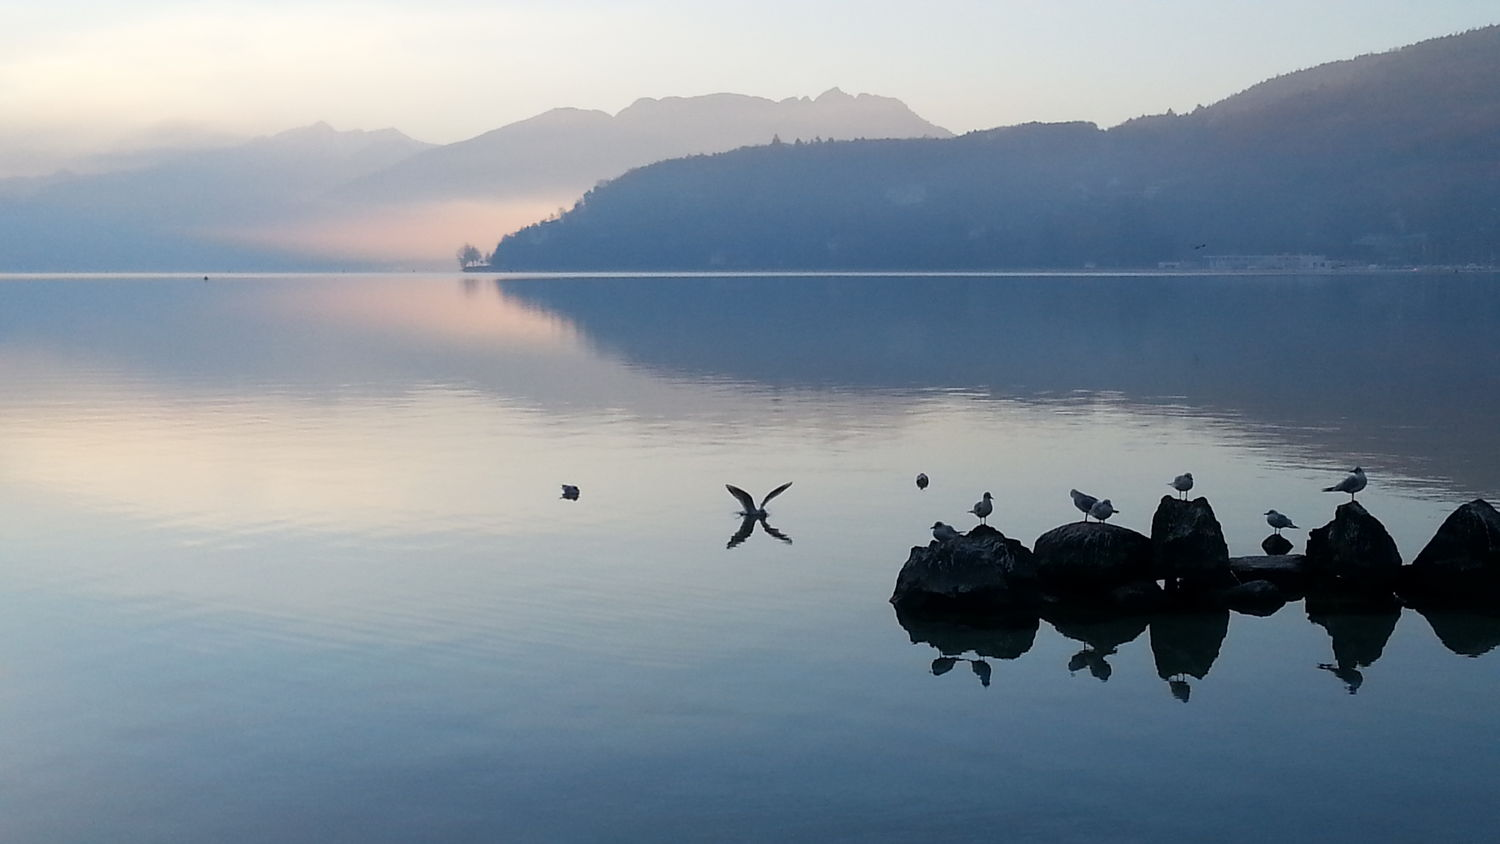 Landscape No Filter, No Edit, Just PhotographyTranquility Tranquility Reflection Lake Water Outdoors Blue No People Beauty In Nature Animal Themes Sunrise... Lake Annecy France  Seagulls At The Lake Seagull Serenity Early Morning Earlybird Quietness The Week On EyeEm